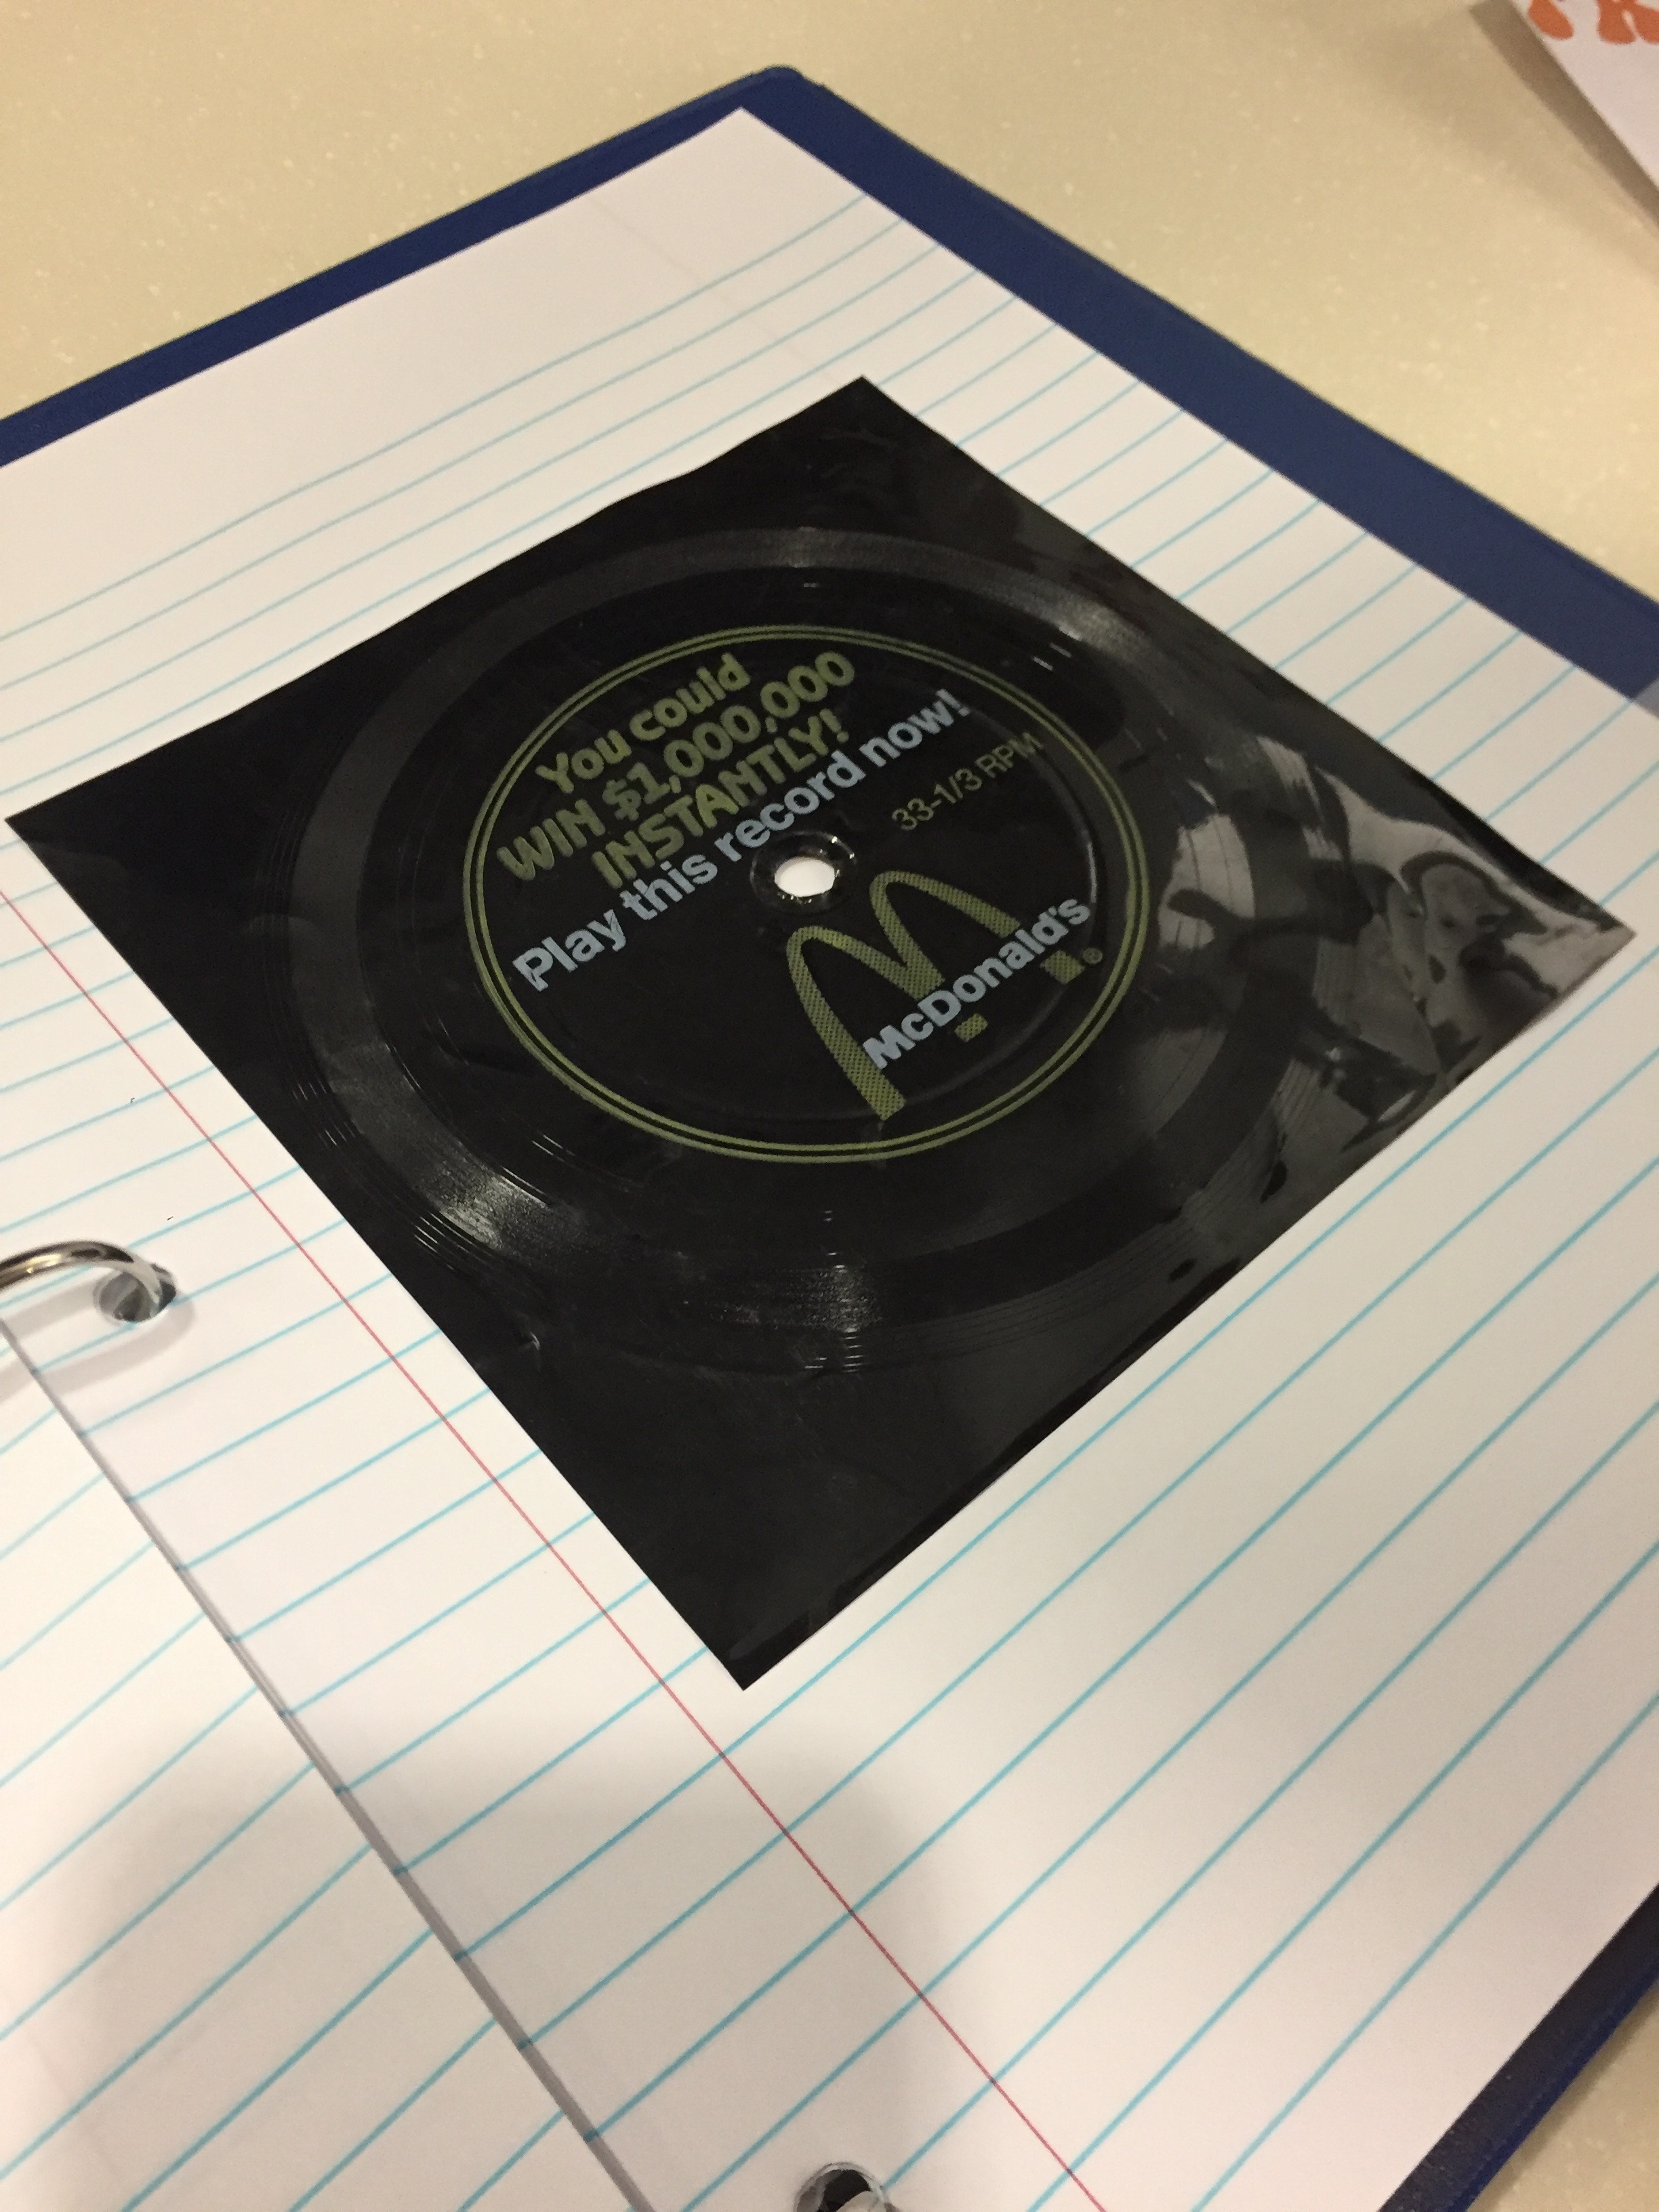 What Happened to the Winner of McDonald's $1 Million Flexi-Disc